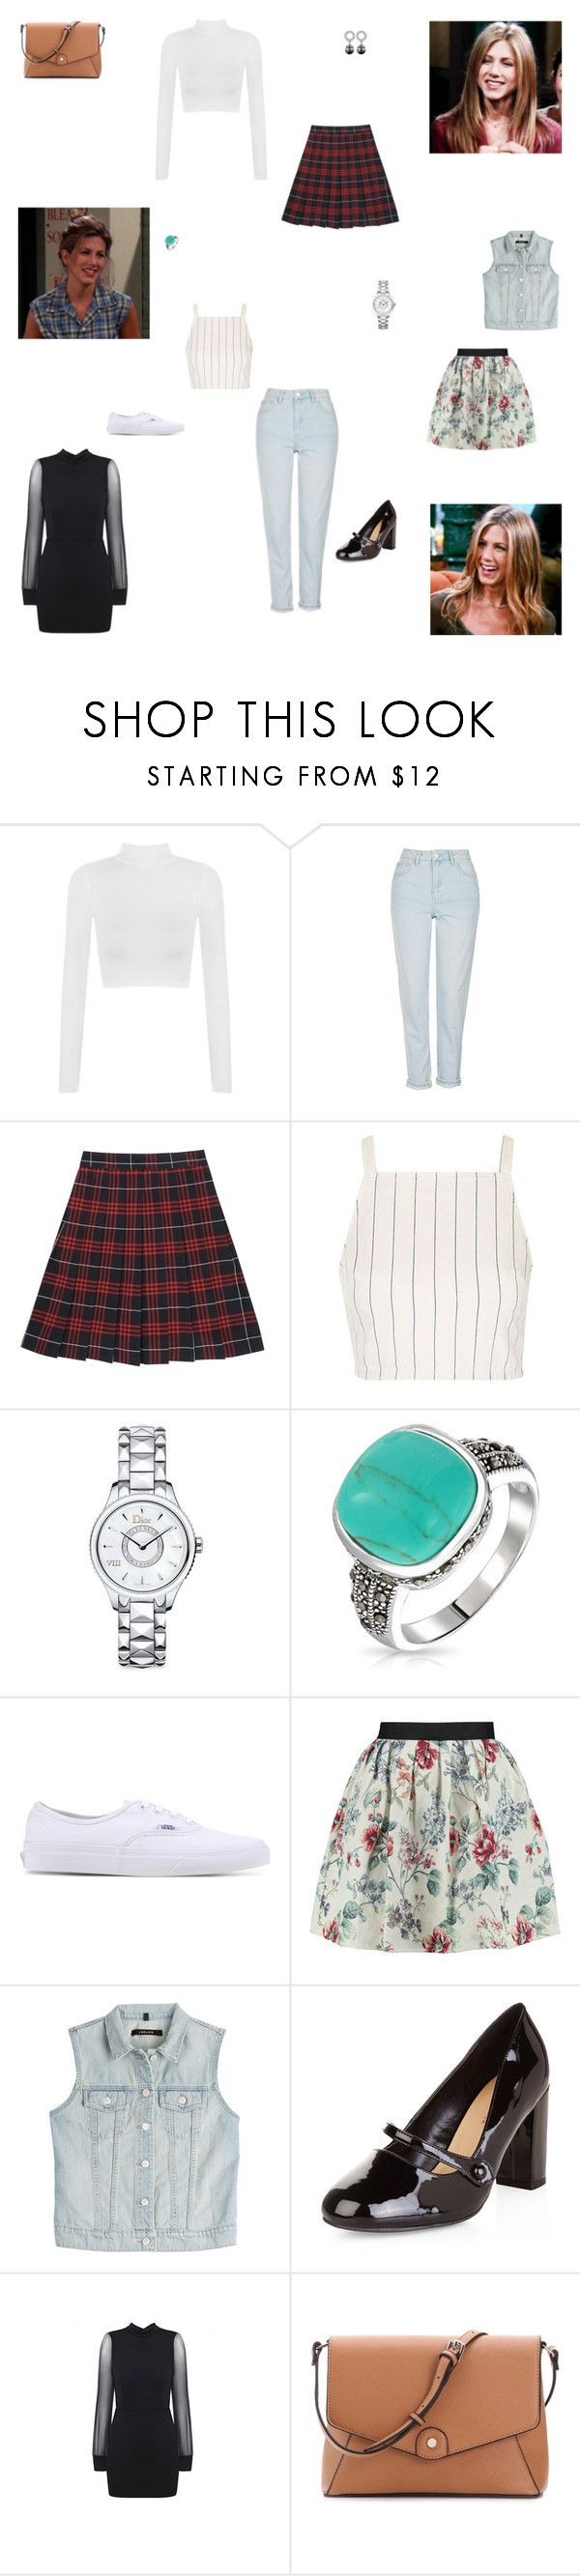 """""""Friends - Rachel Green Inspired Outfits"""" by verostyle16 on Polyvore featuring WearAll, Topshop, Christian Dior, Bling Jewelry, Vans, Raoul, J Brand, New Look and Dyrberg/Kern"""